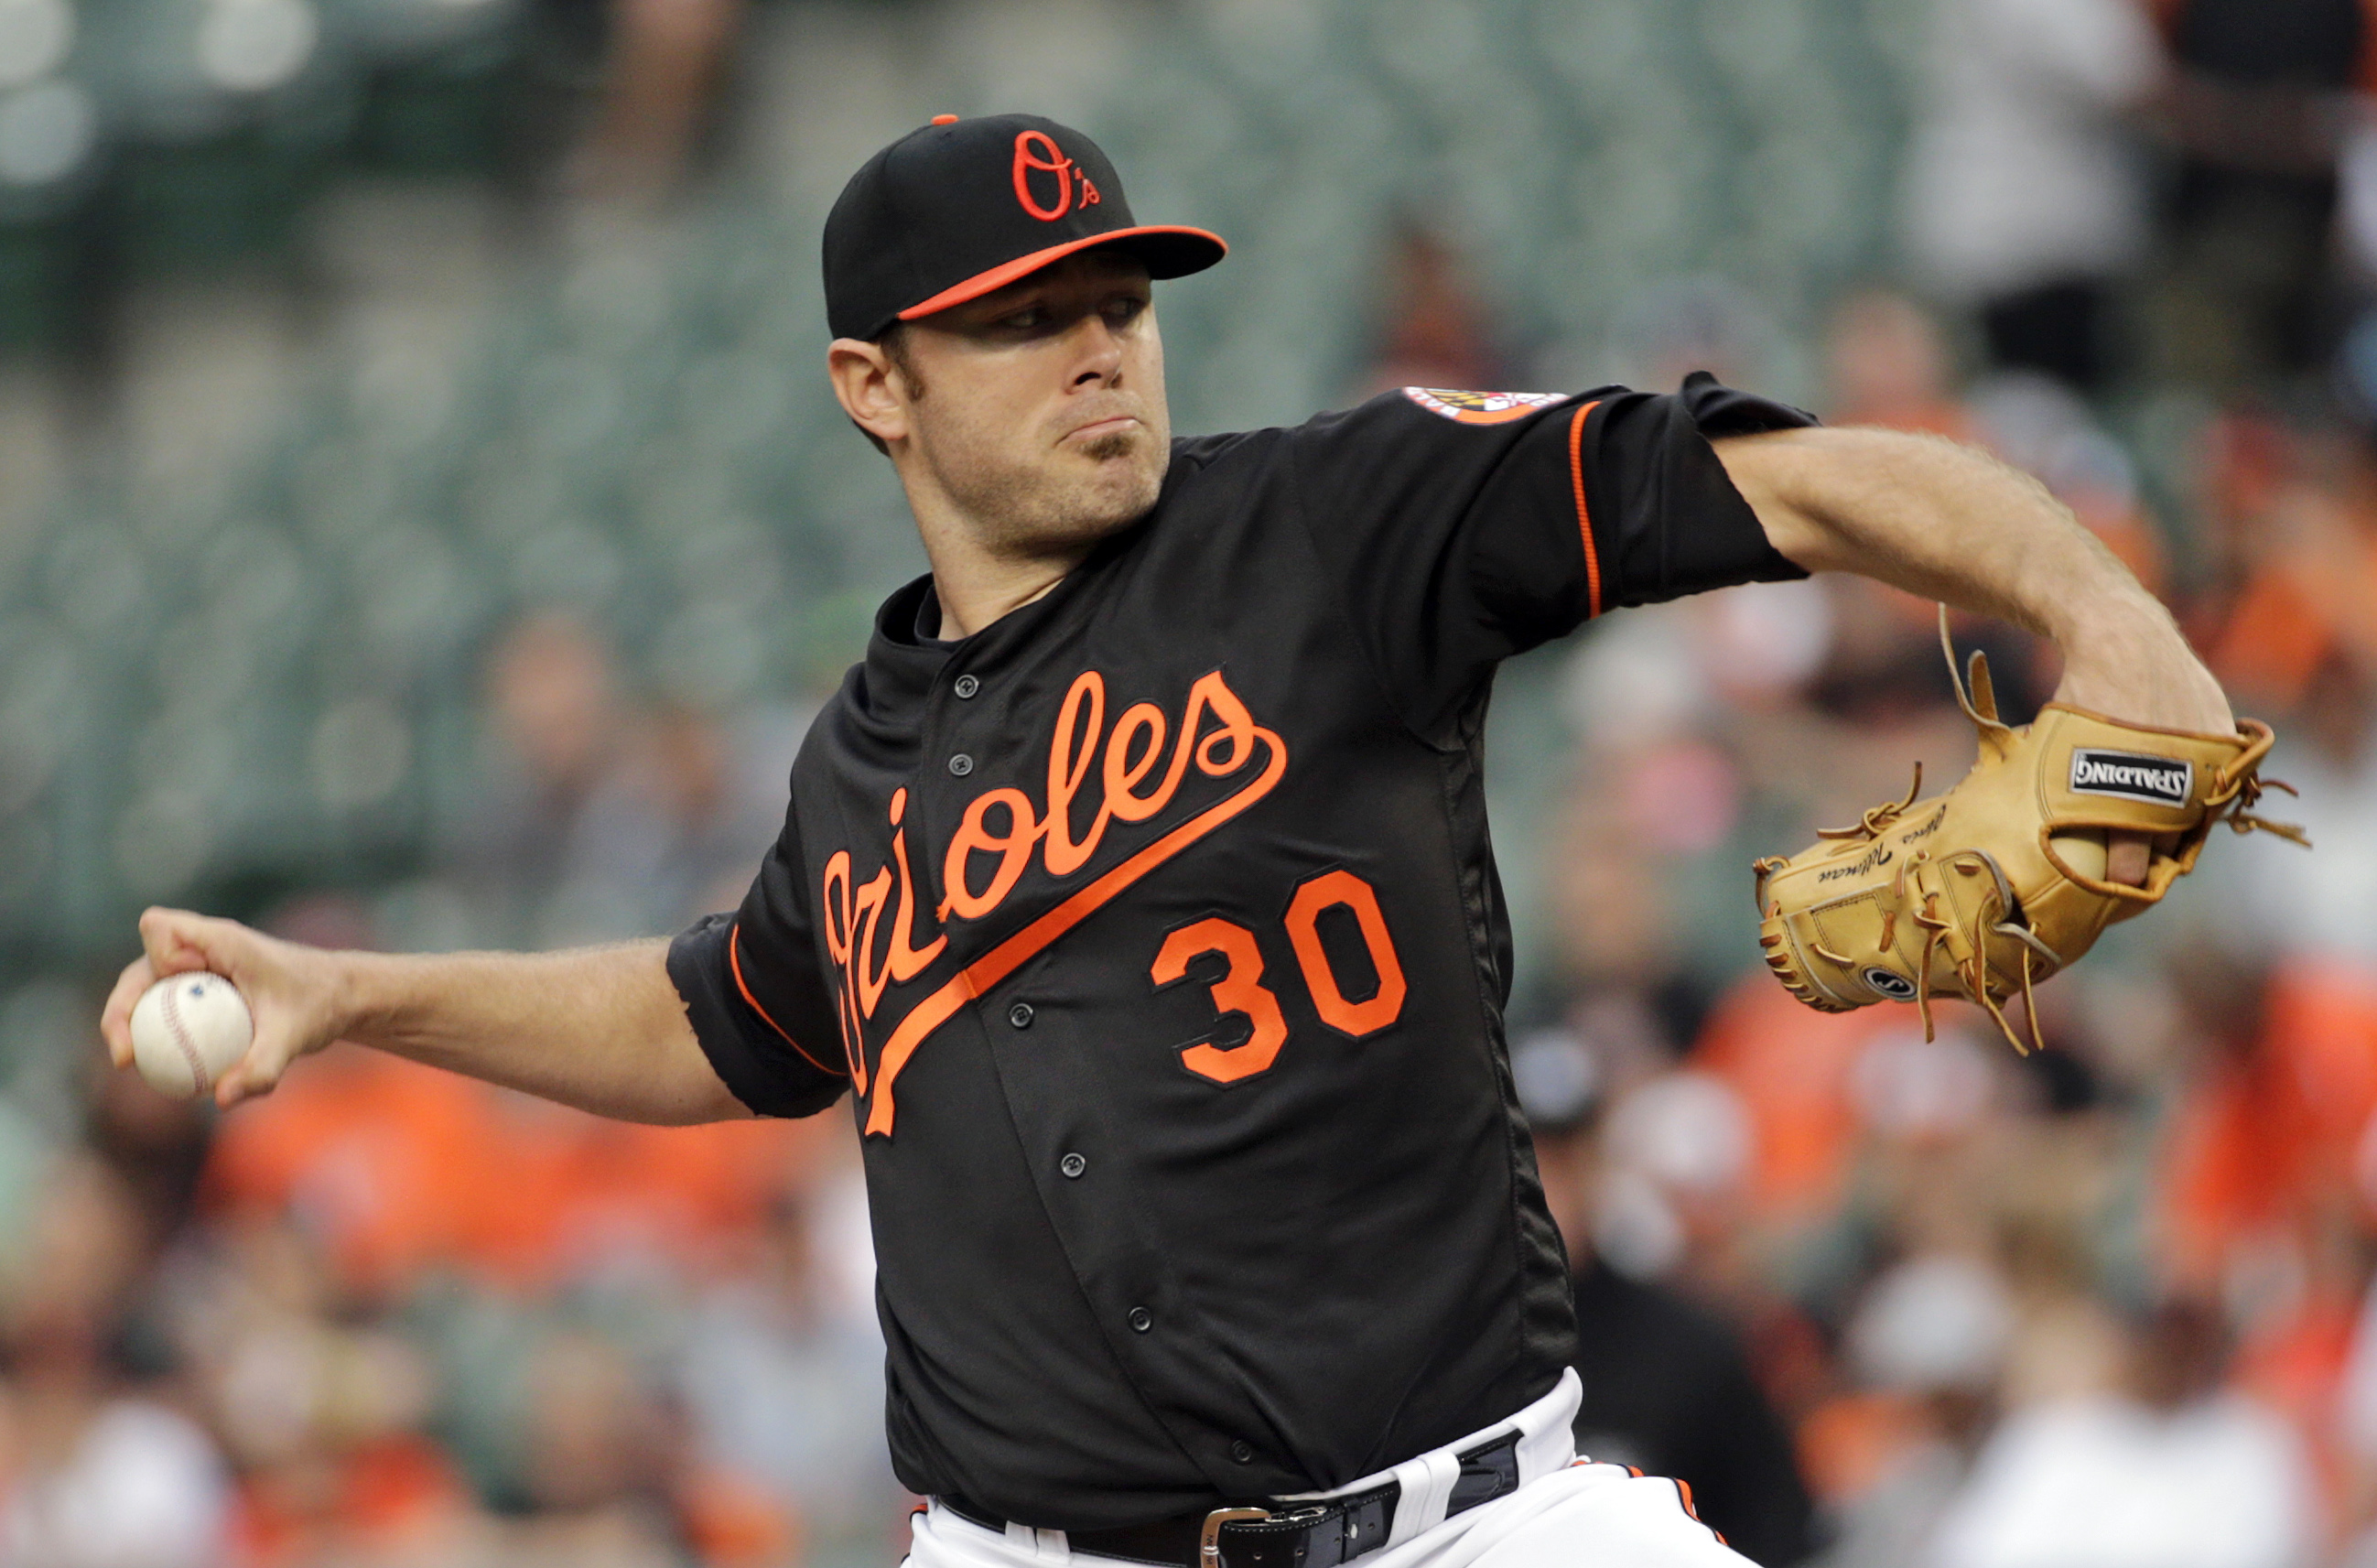 Baltimore Orioles starting pitcher Chris Tillman throws to the New York Yankees in the first inning of a baseball game in Baltimore, Friday, June 3, 2016. (AP Photo/Patrick Semansky)